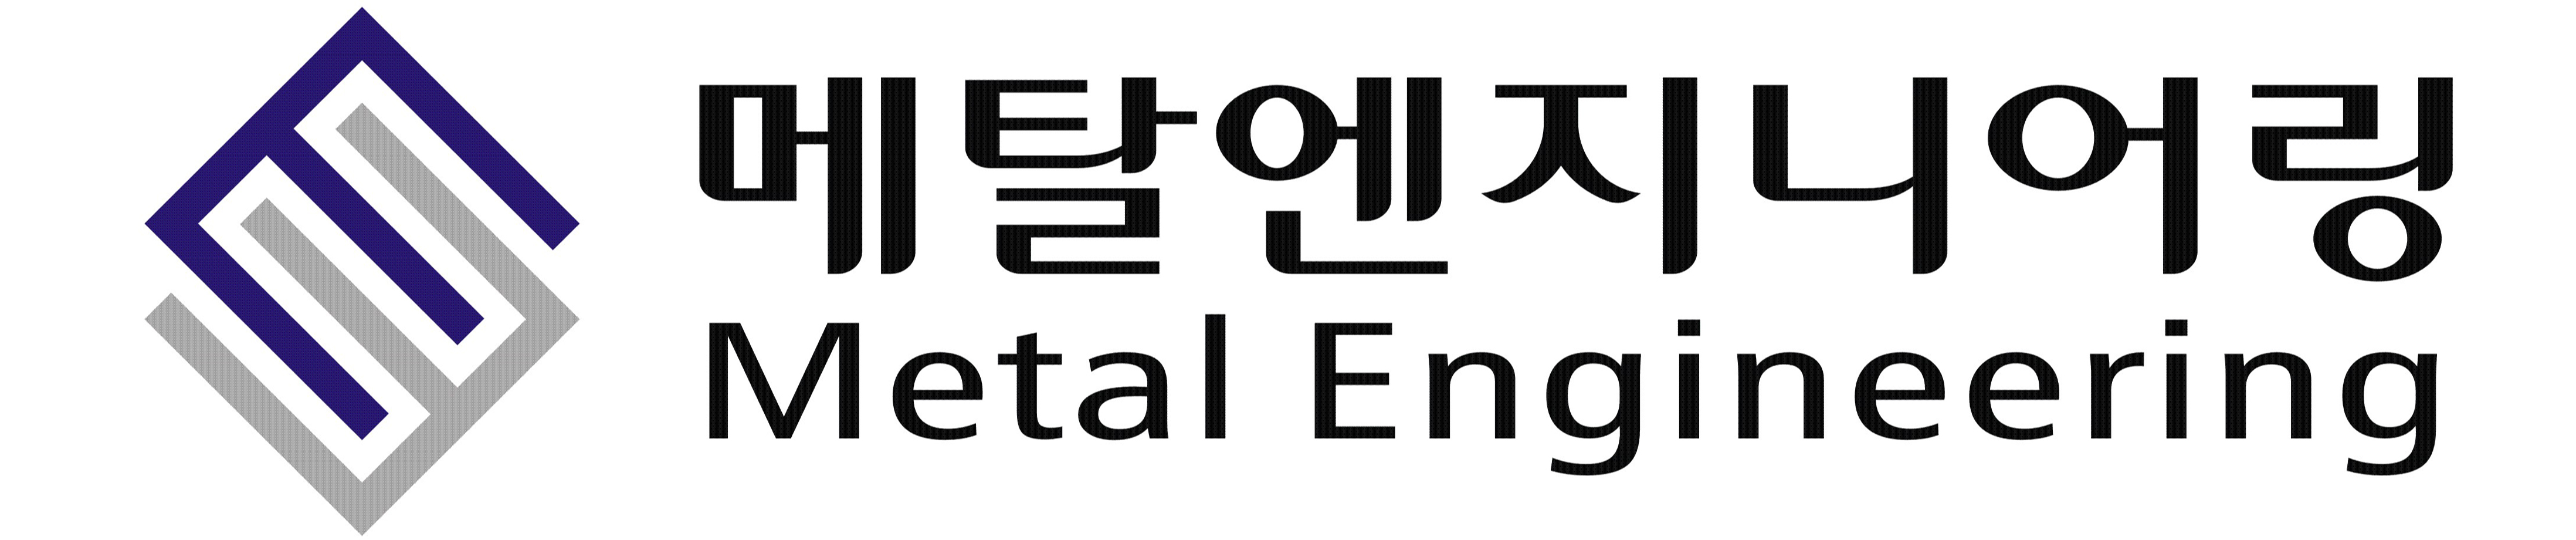 Metal Engineering Co., Ltd.